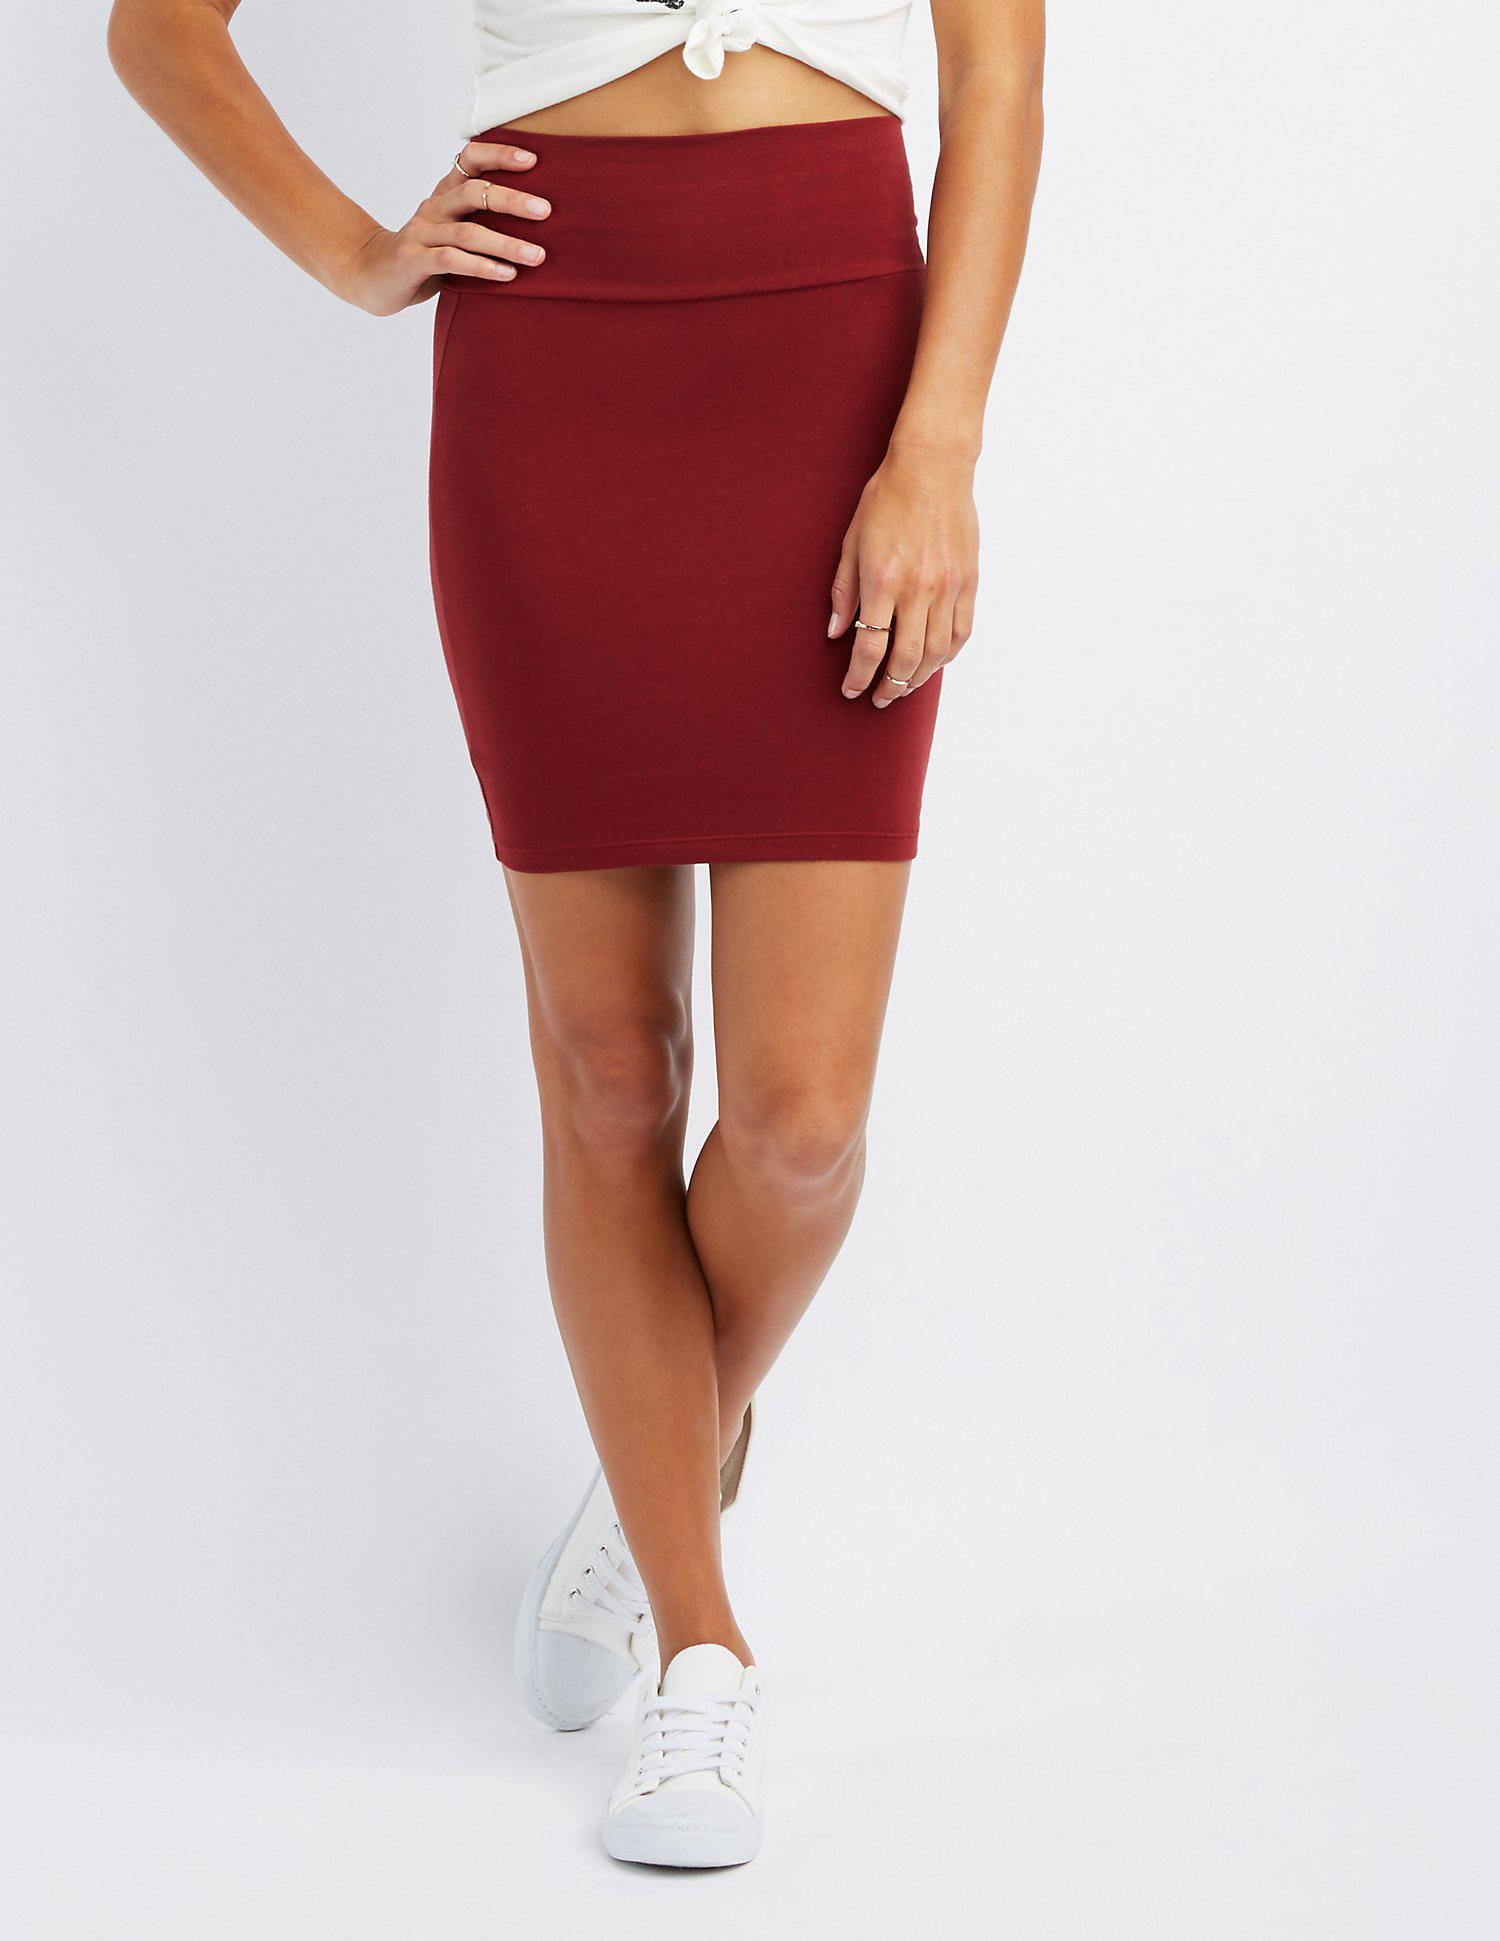 0a92cf1bb Gallery. Previously sold at: Charlotte Russe · Women's Bodycon Skirts